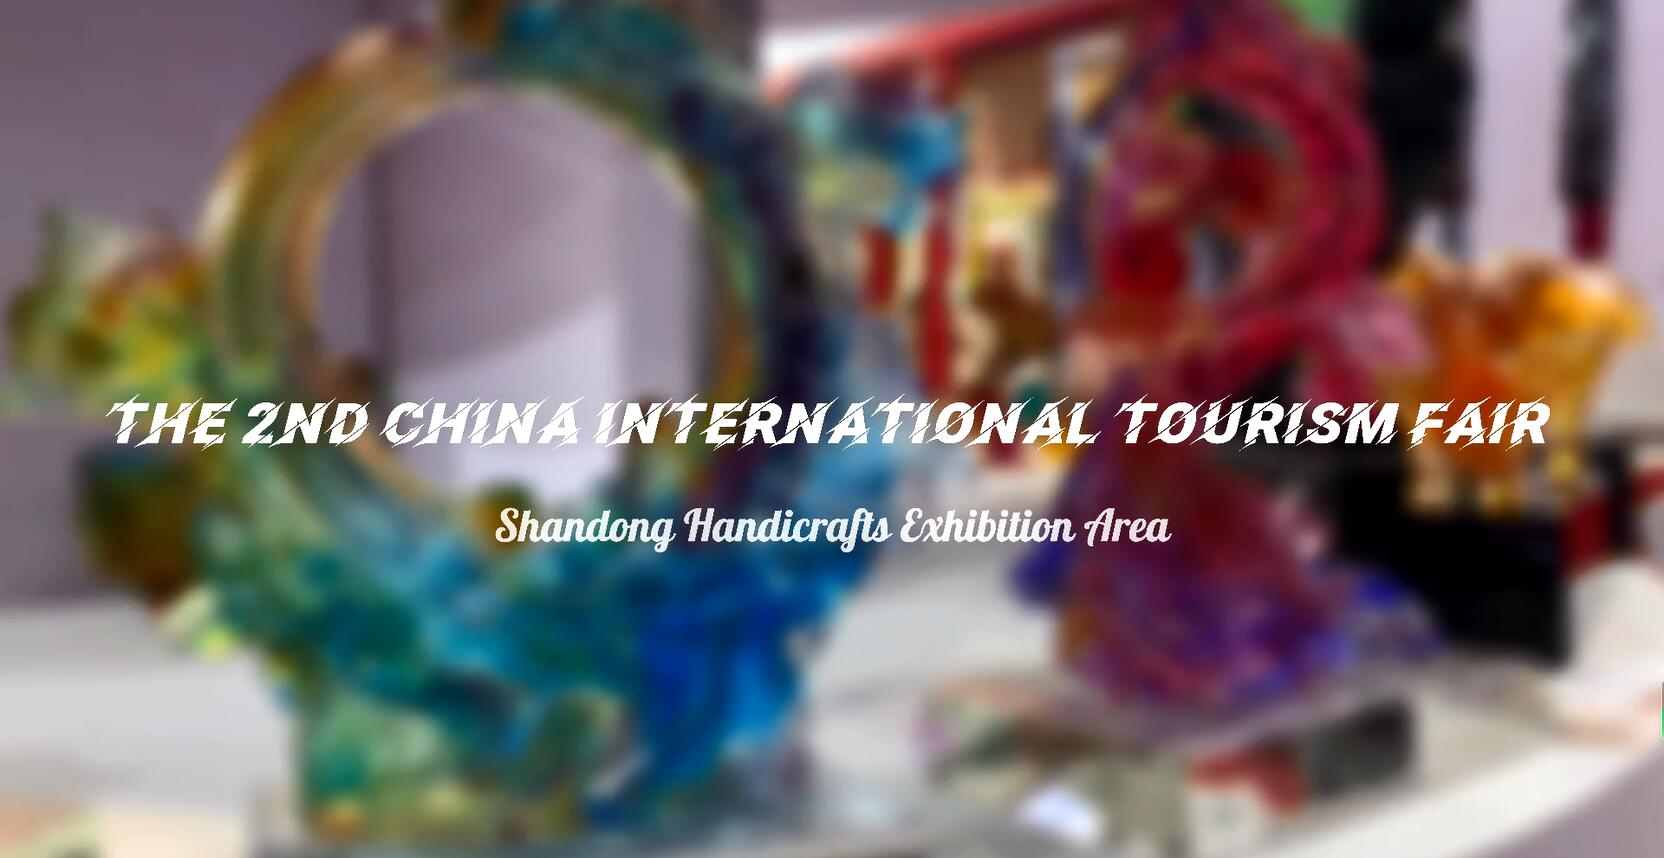 Handicrafts in Shandong exhibition at CICTF very eye-catching